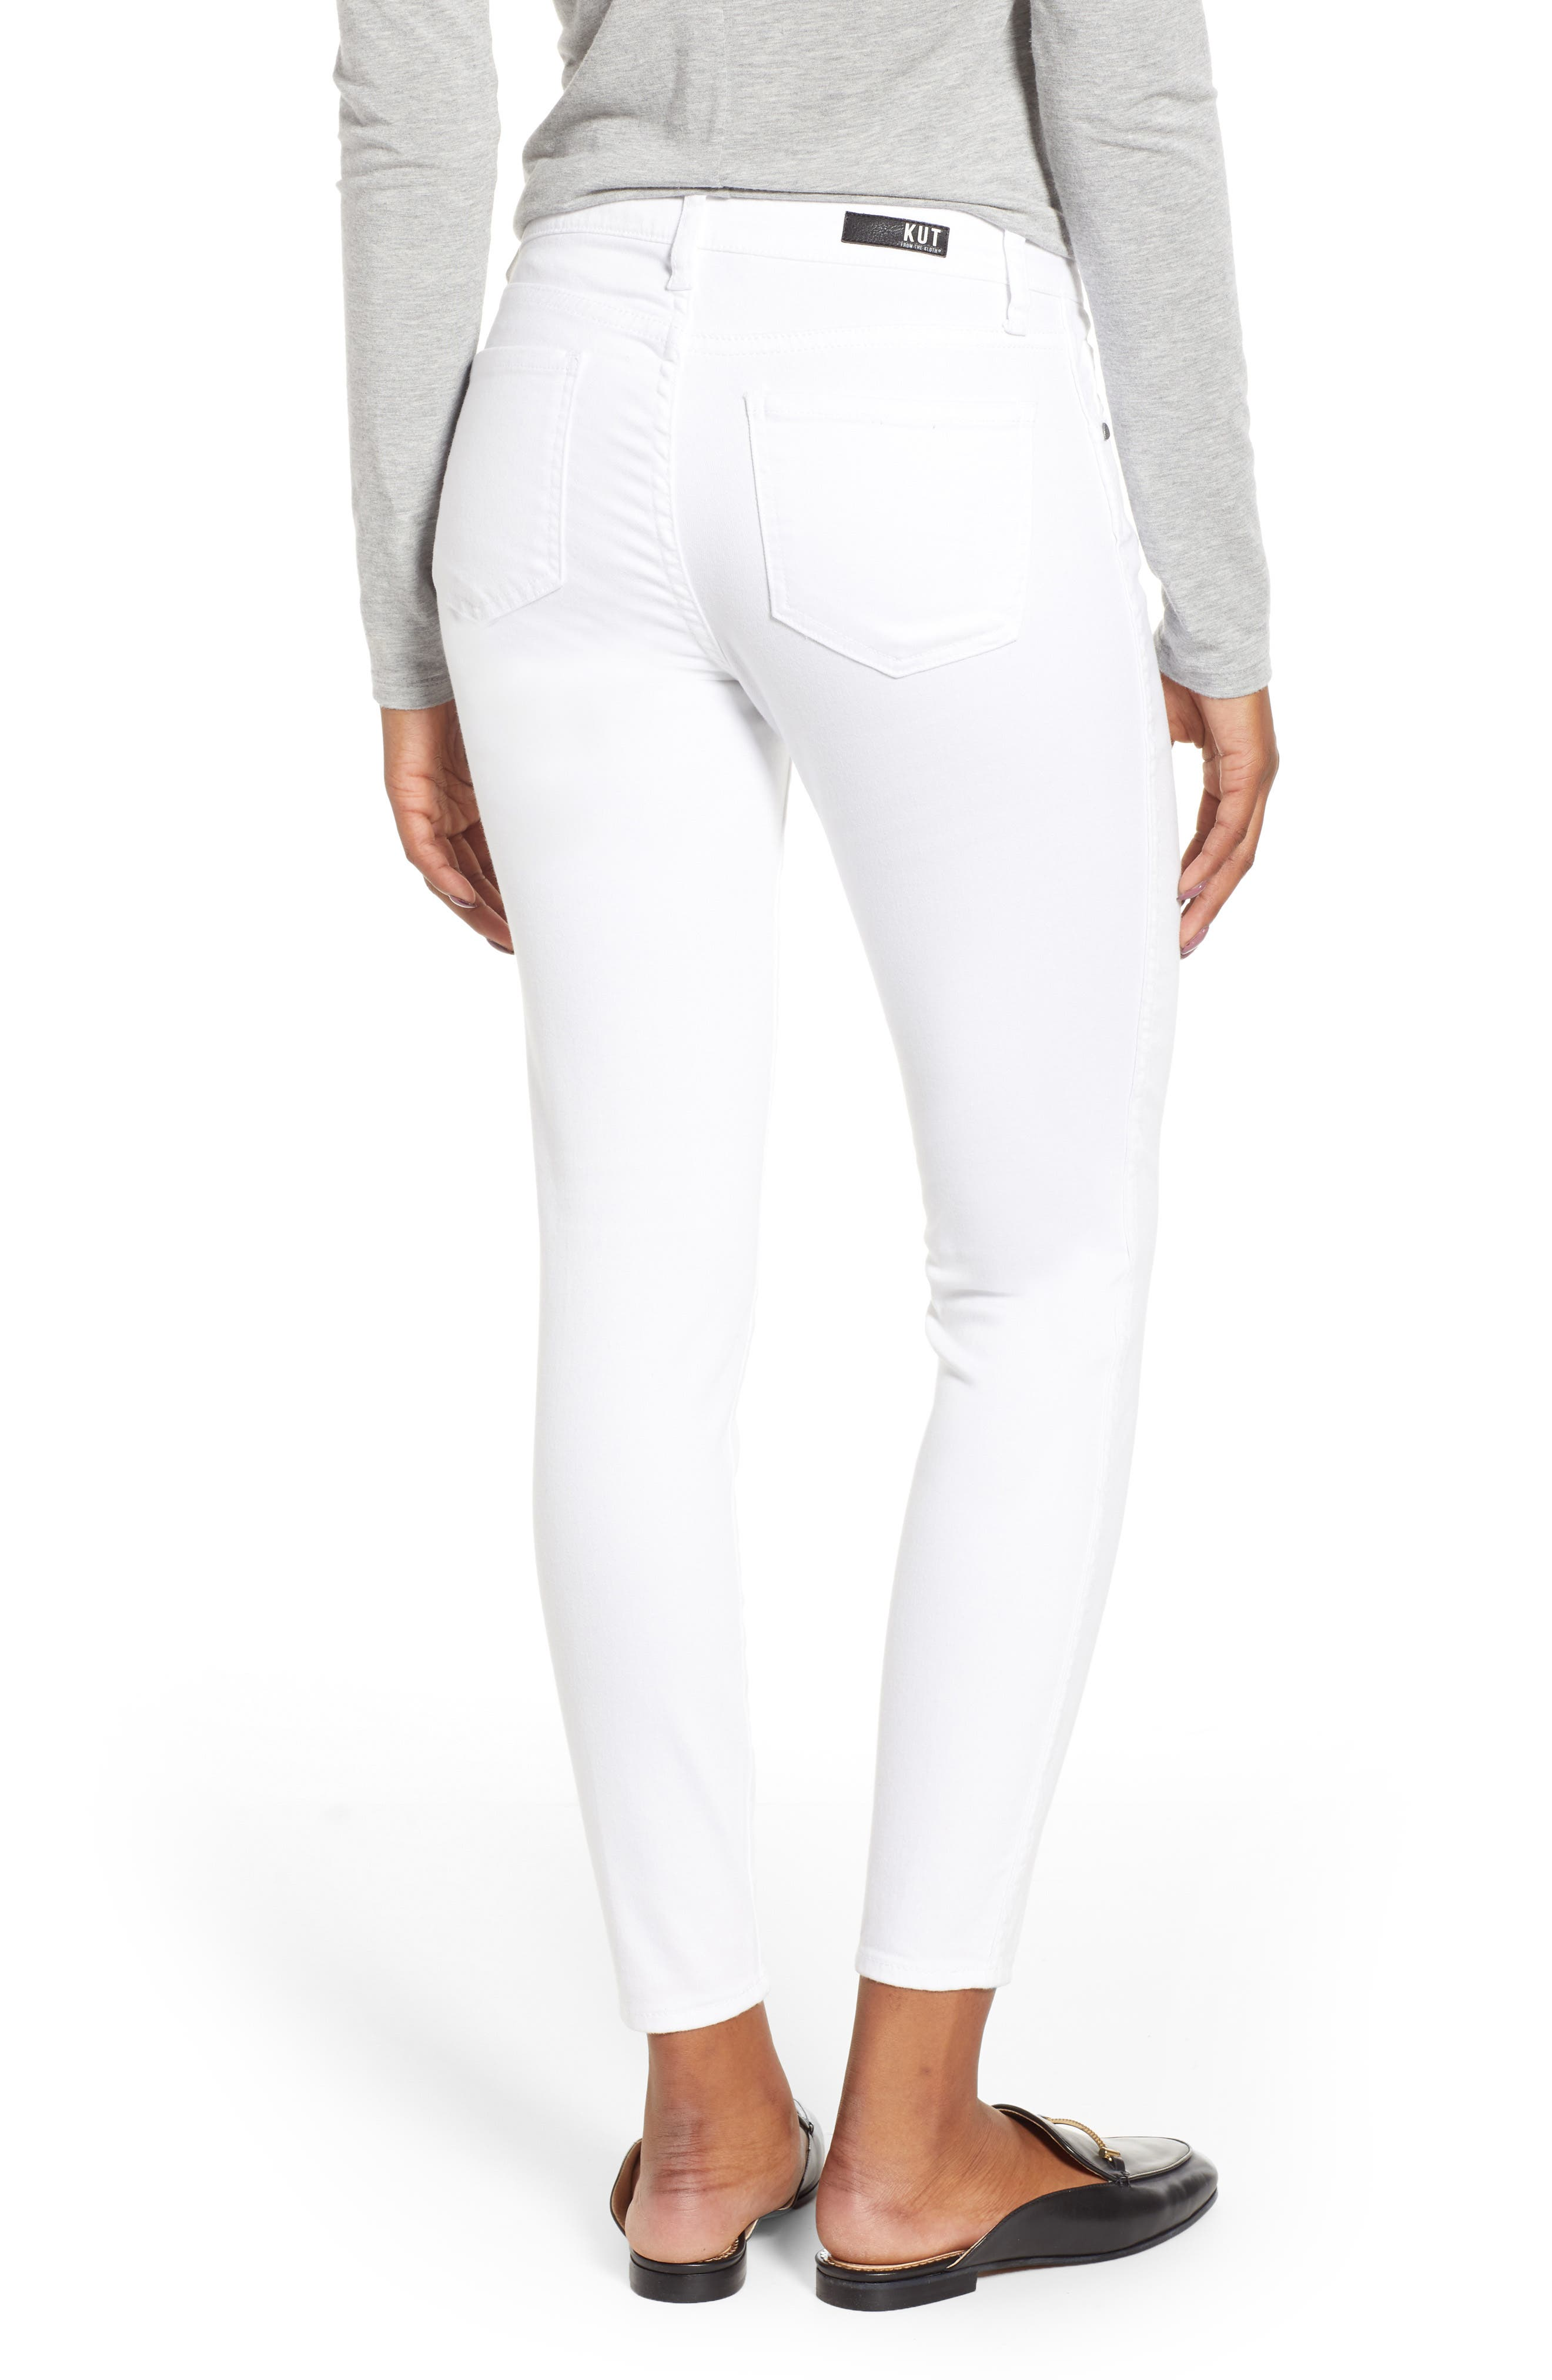 KUT FROM THE KLOTH, Donna Ankle Skinny Jeans, Alternate thumbnail 2, color, OPTIC WHITE